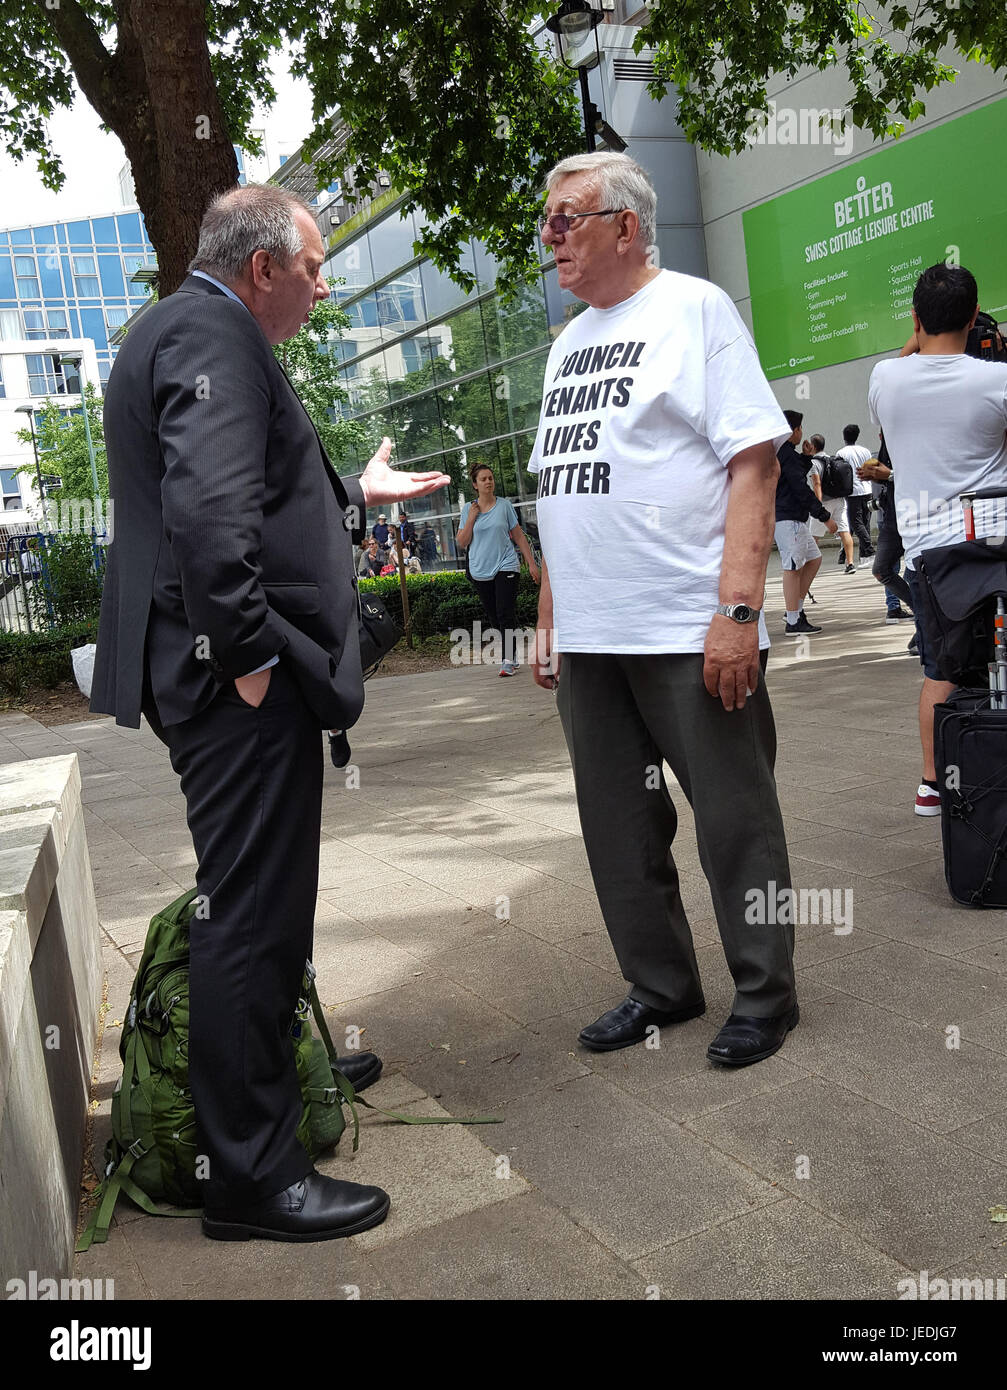 London, UK. 24th June, 2017. Outside Swiss Cottage Leisure Centre, a Fire Safety Inspector speaks with resident - Stock Image